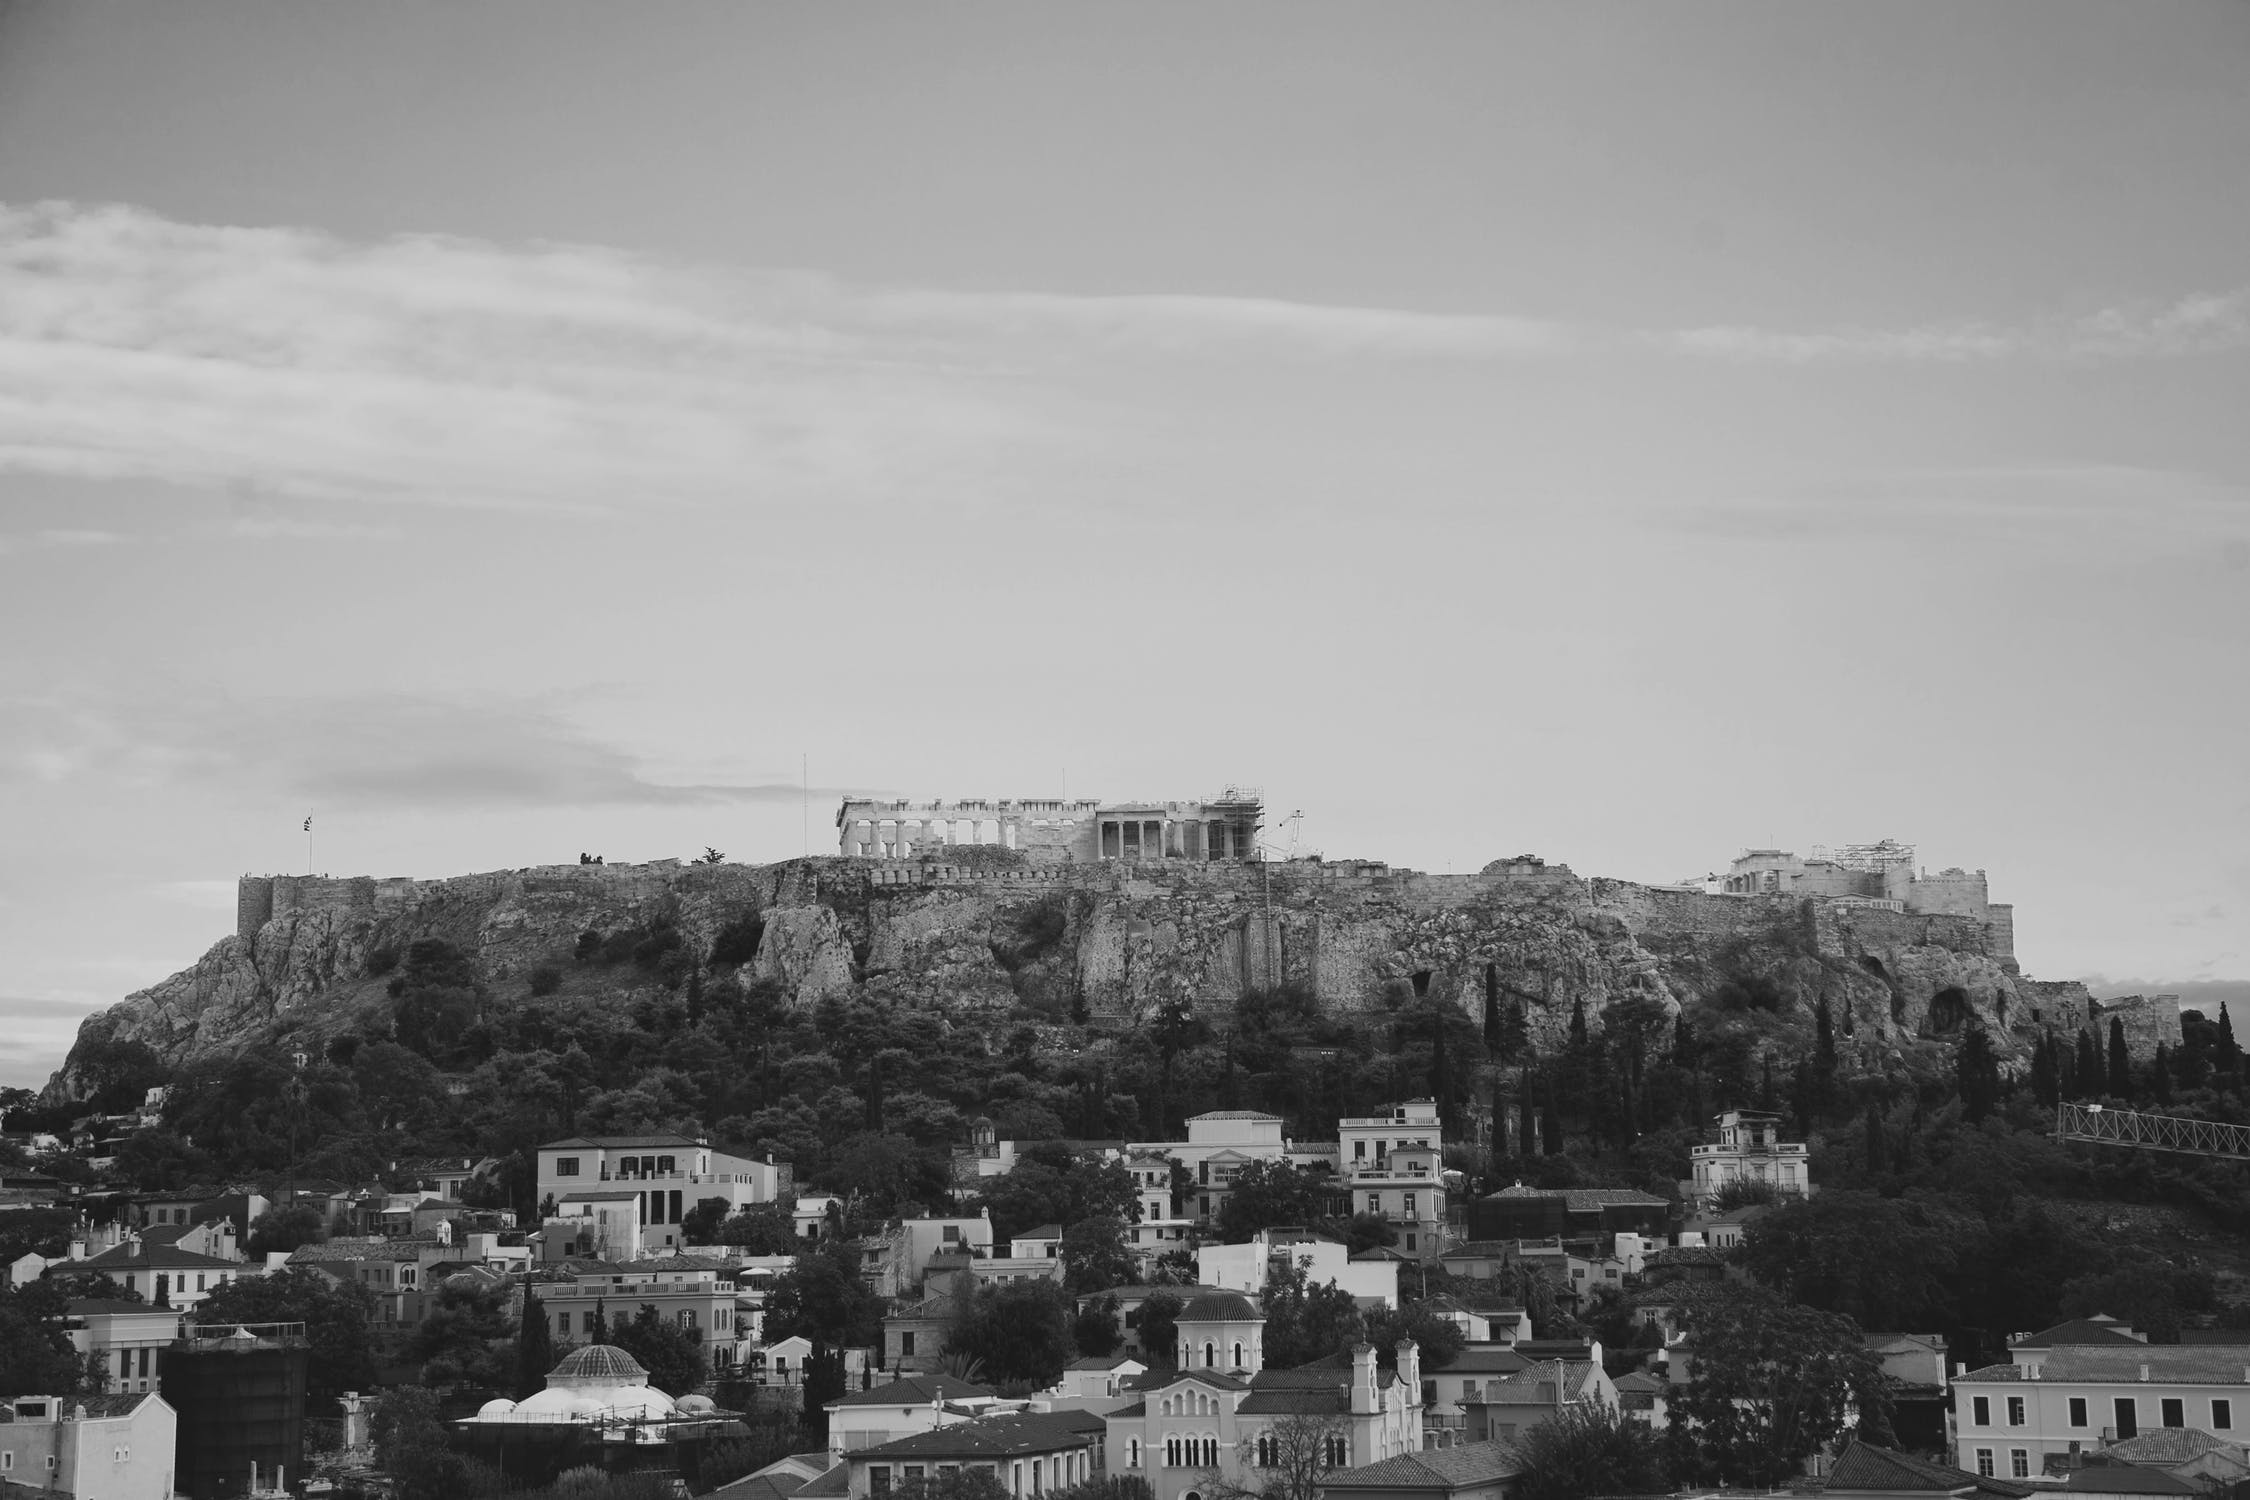 Photo: Greece in Grayscale